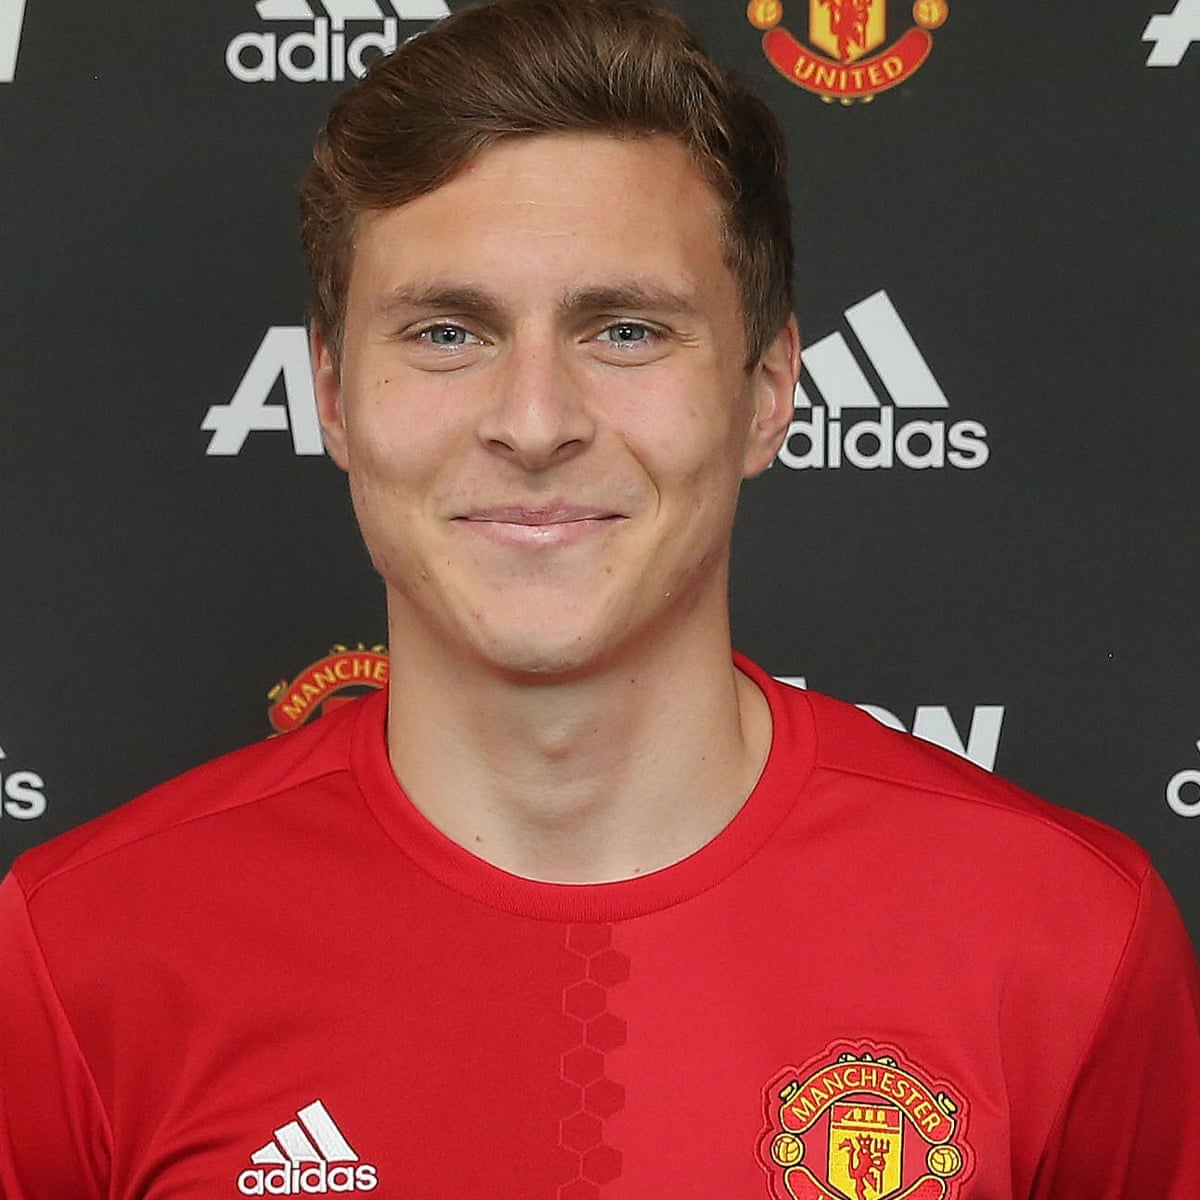 Manchester United complete £31m signing of Victor Lindelof from Benfica |  Manchester United | The Guardian